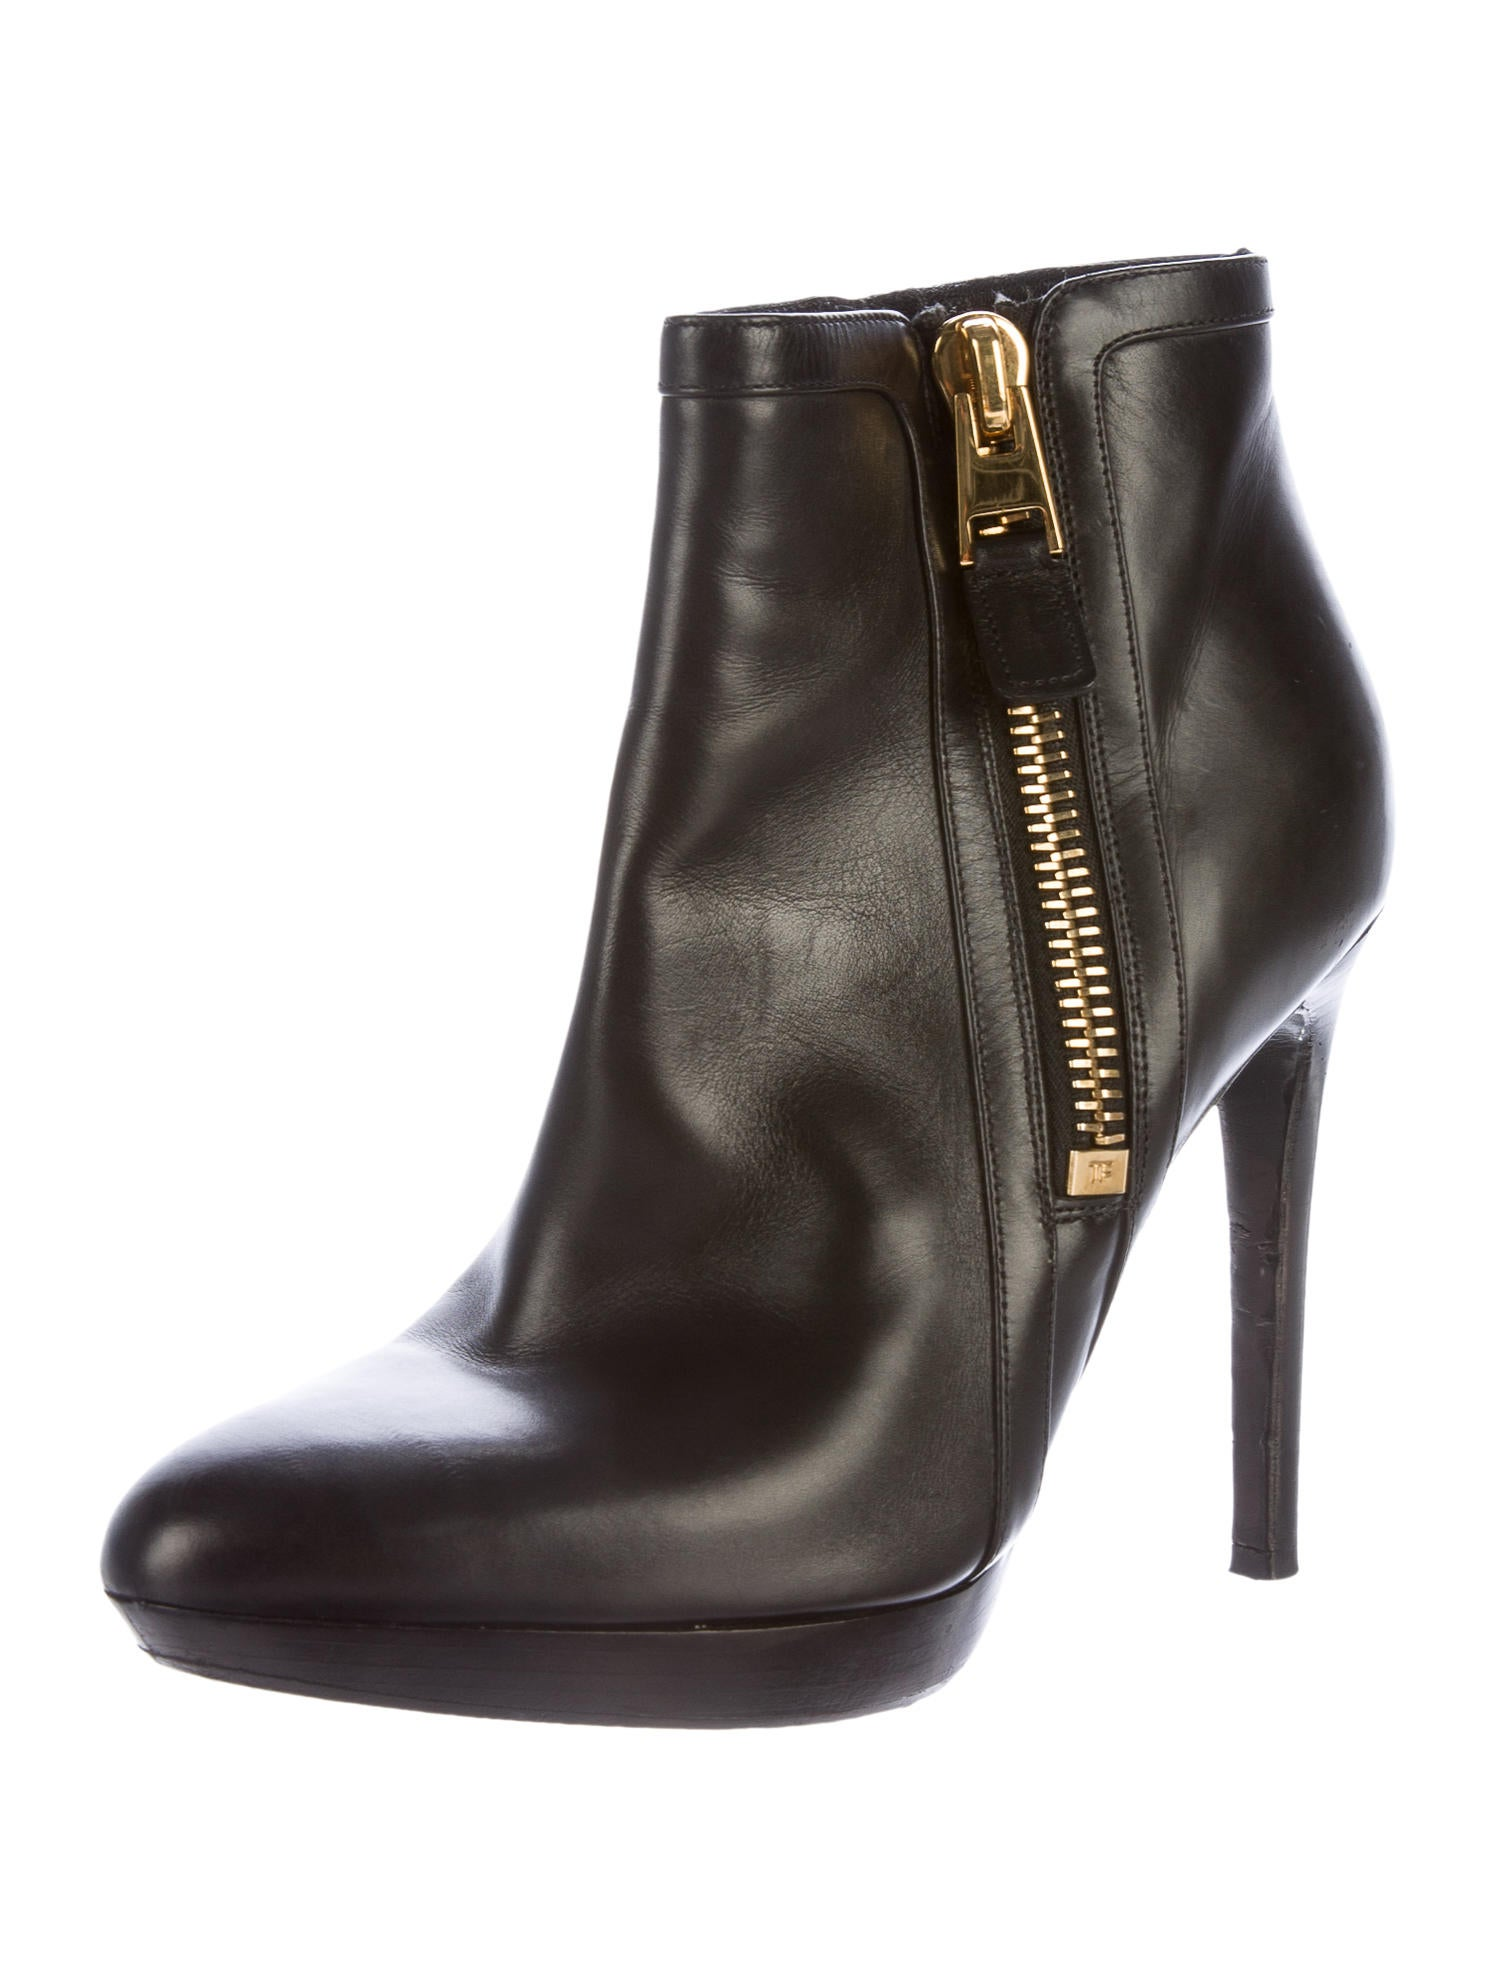 tom ford leather semi pointed toe ankle boots shoes